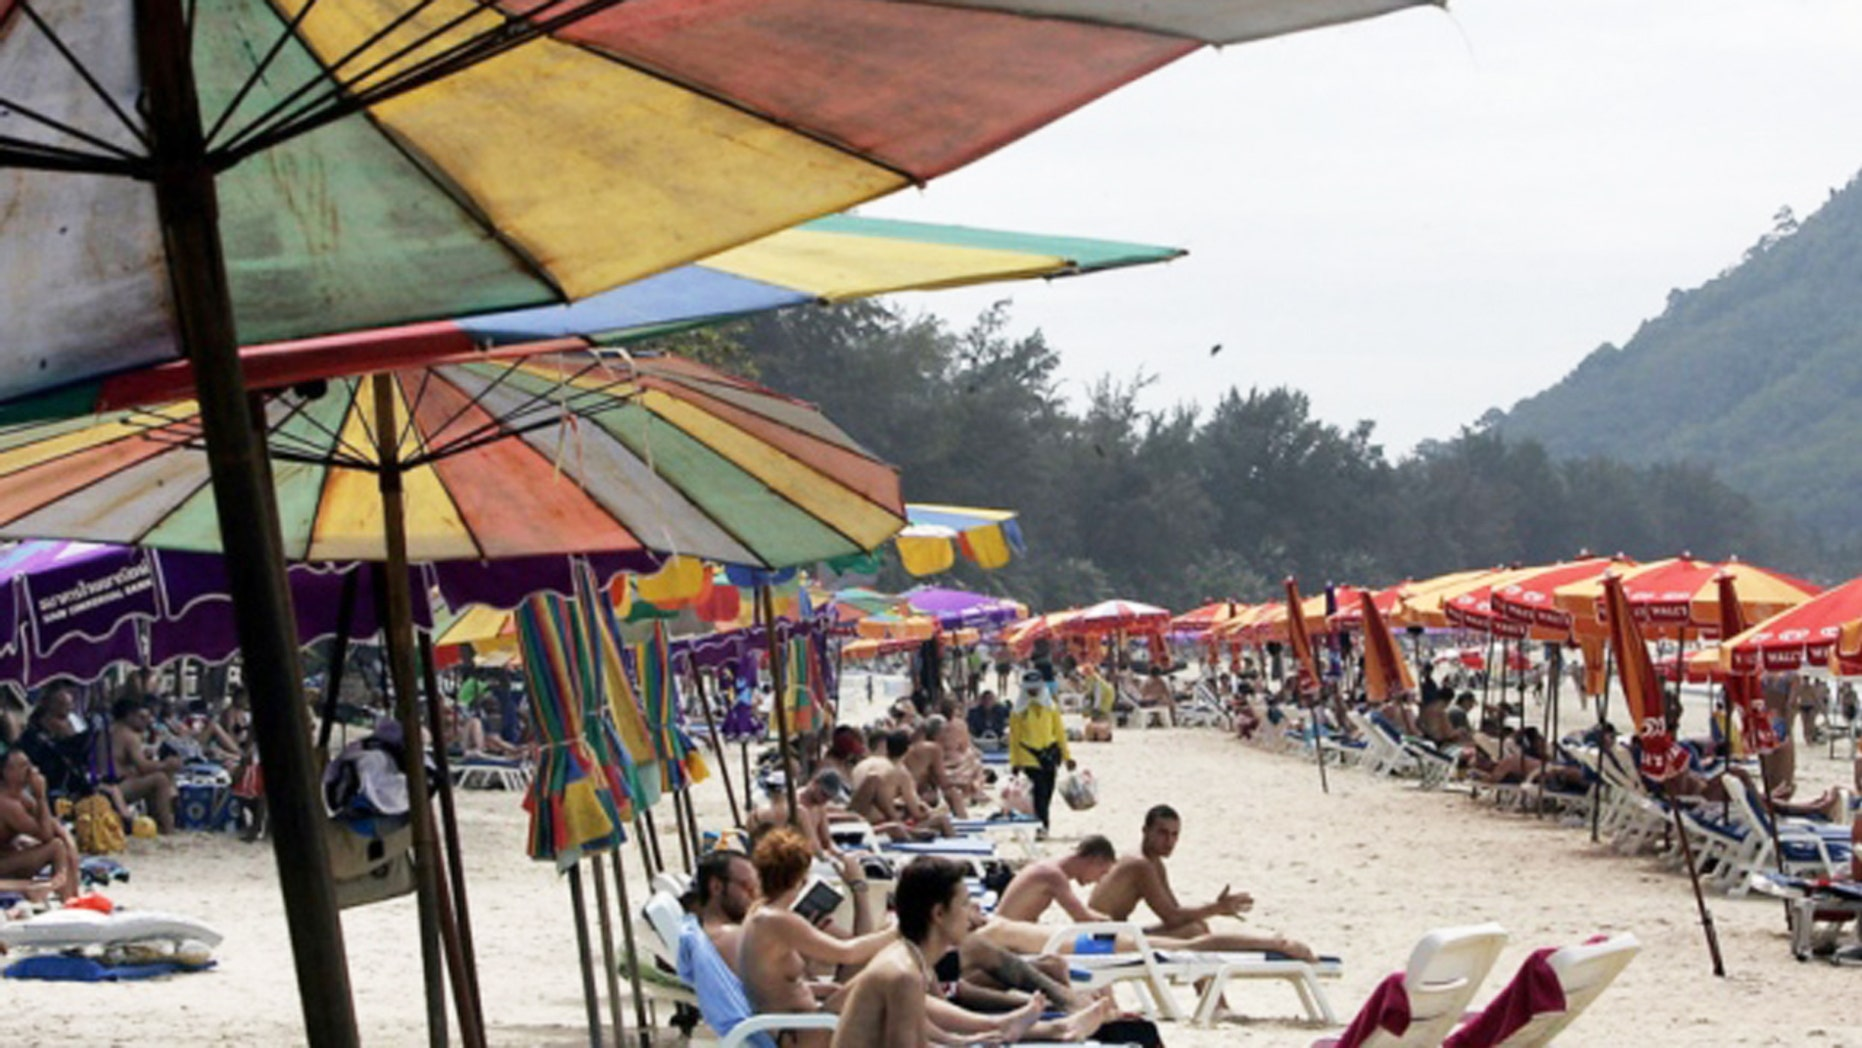 Patong beach is a popular destination for tourists in Thailand.